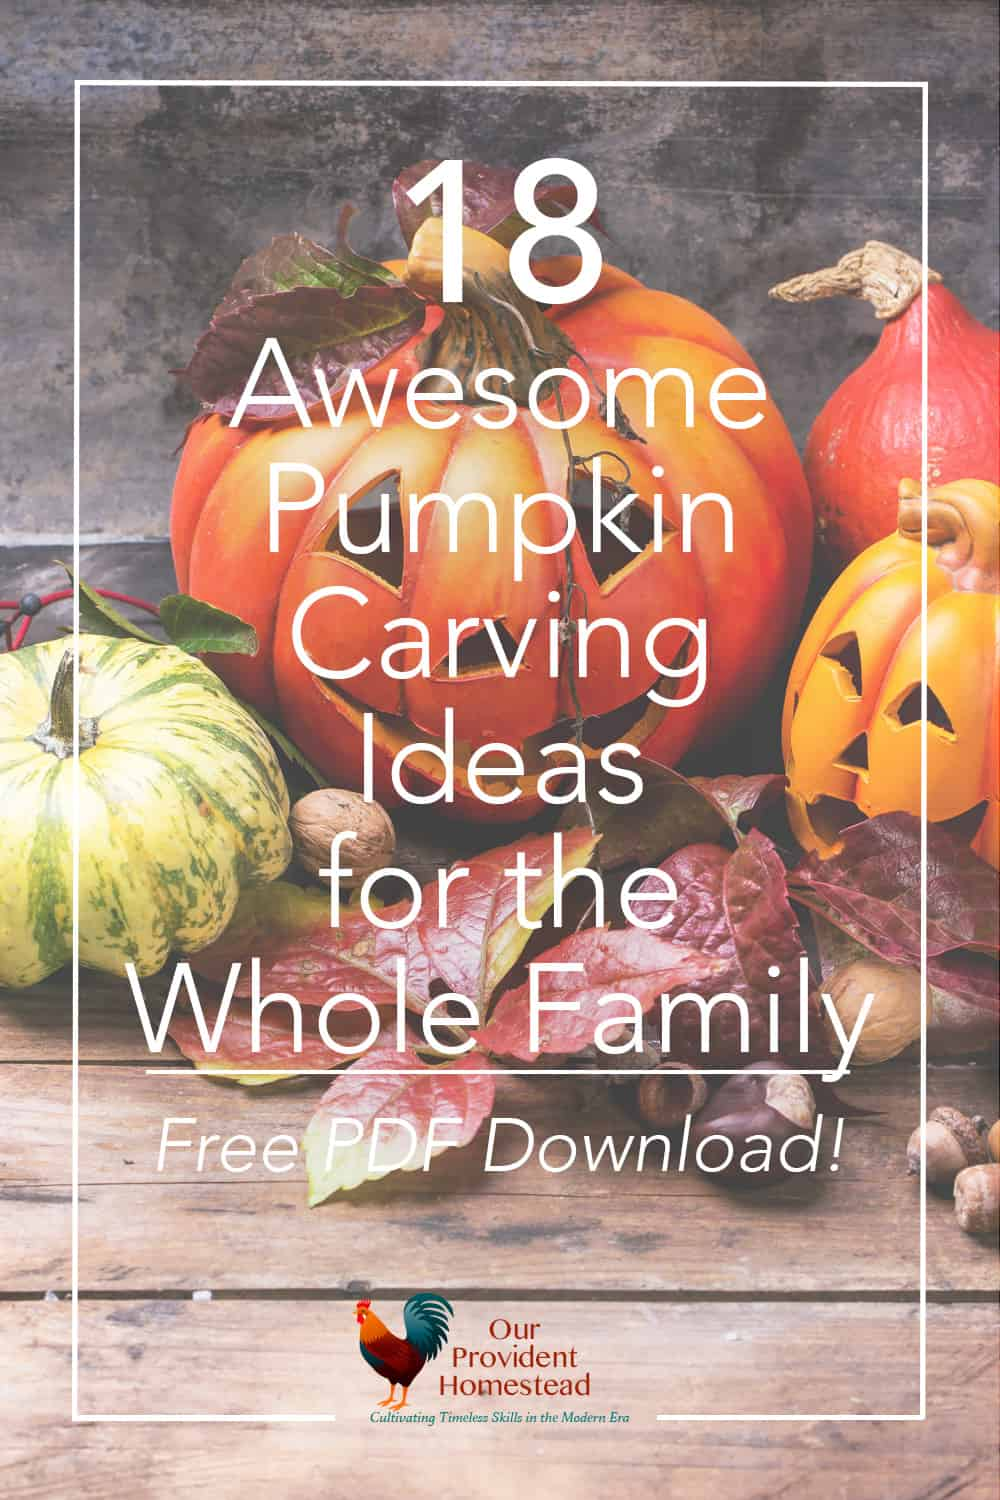 Do you love Halloween! Click here to get 18 awesome pumpkin carving ideas for the whole family and a FREE Printable Pumpkin Carving Ideas PDF. Pumpkin Carving Ideas | Free PDF Download | Fall Family Activities